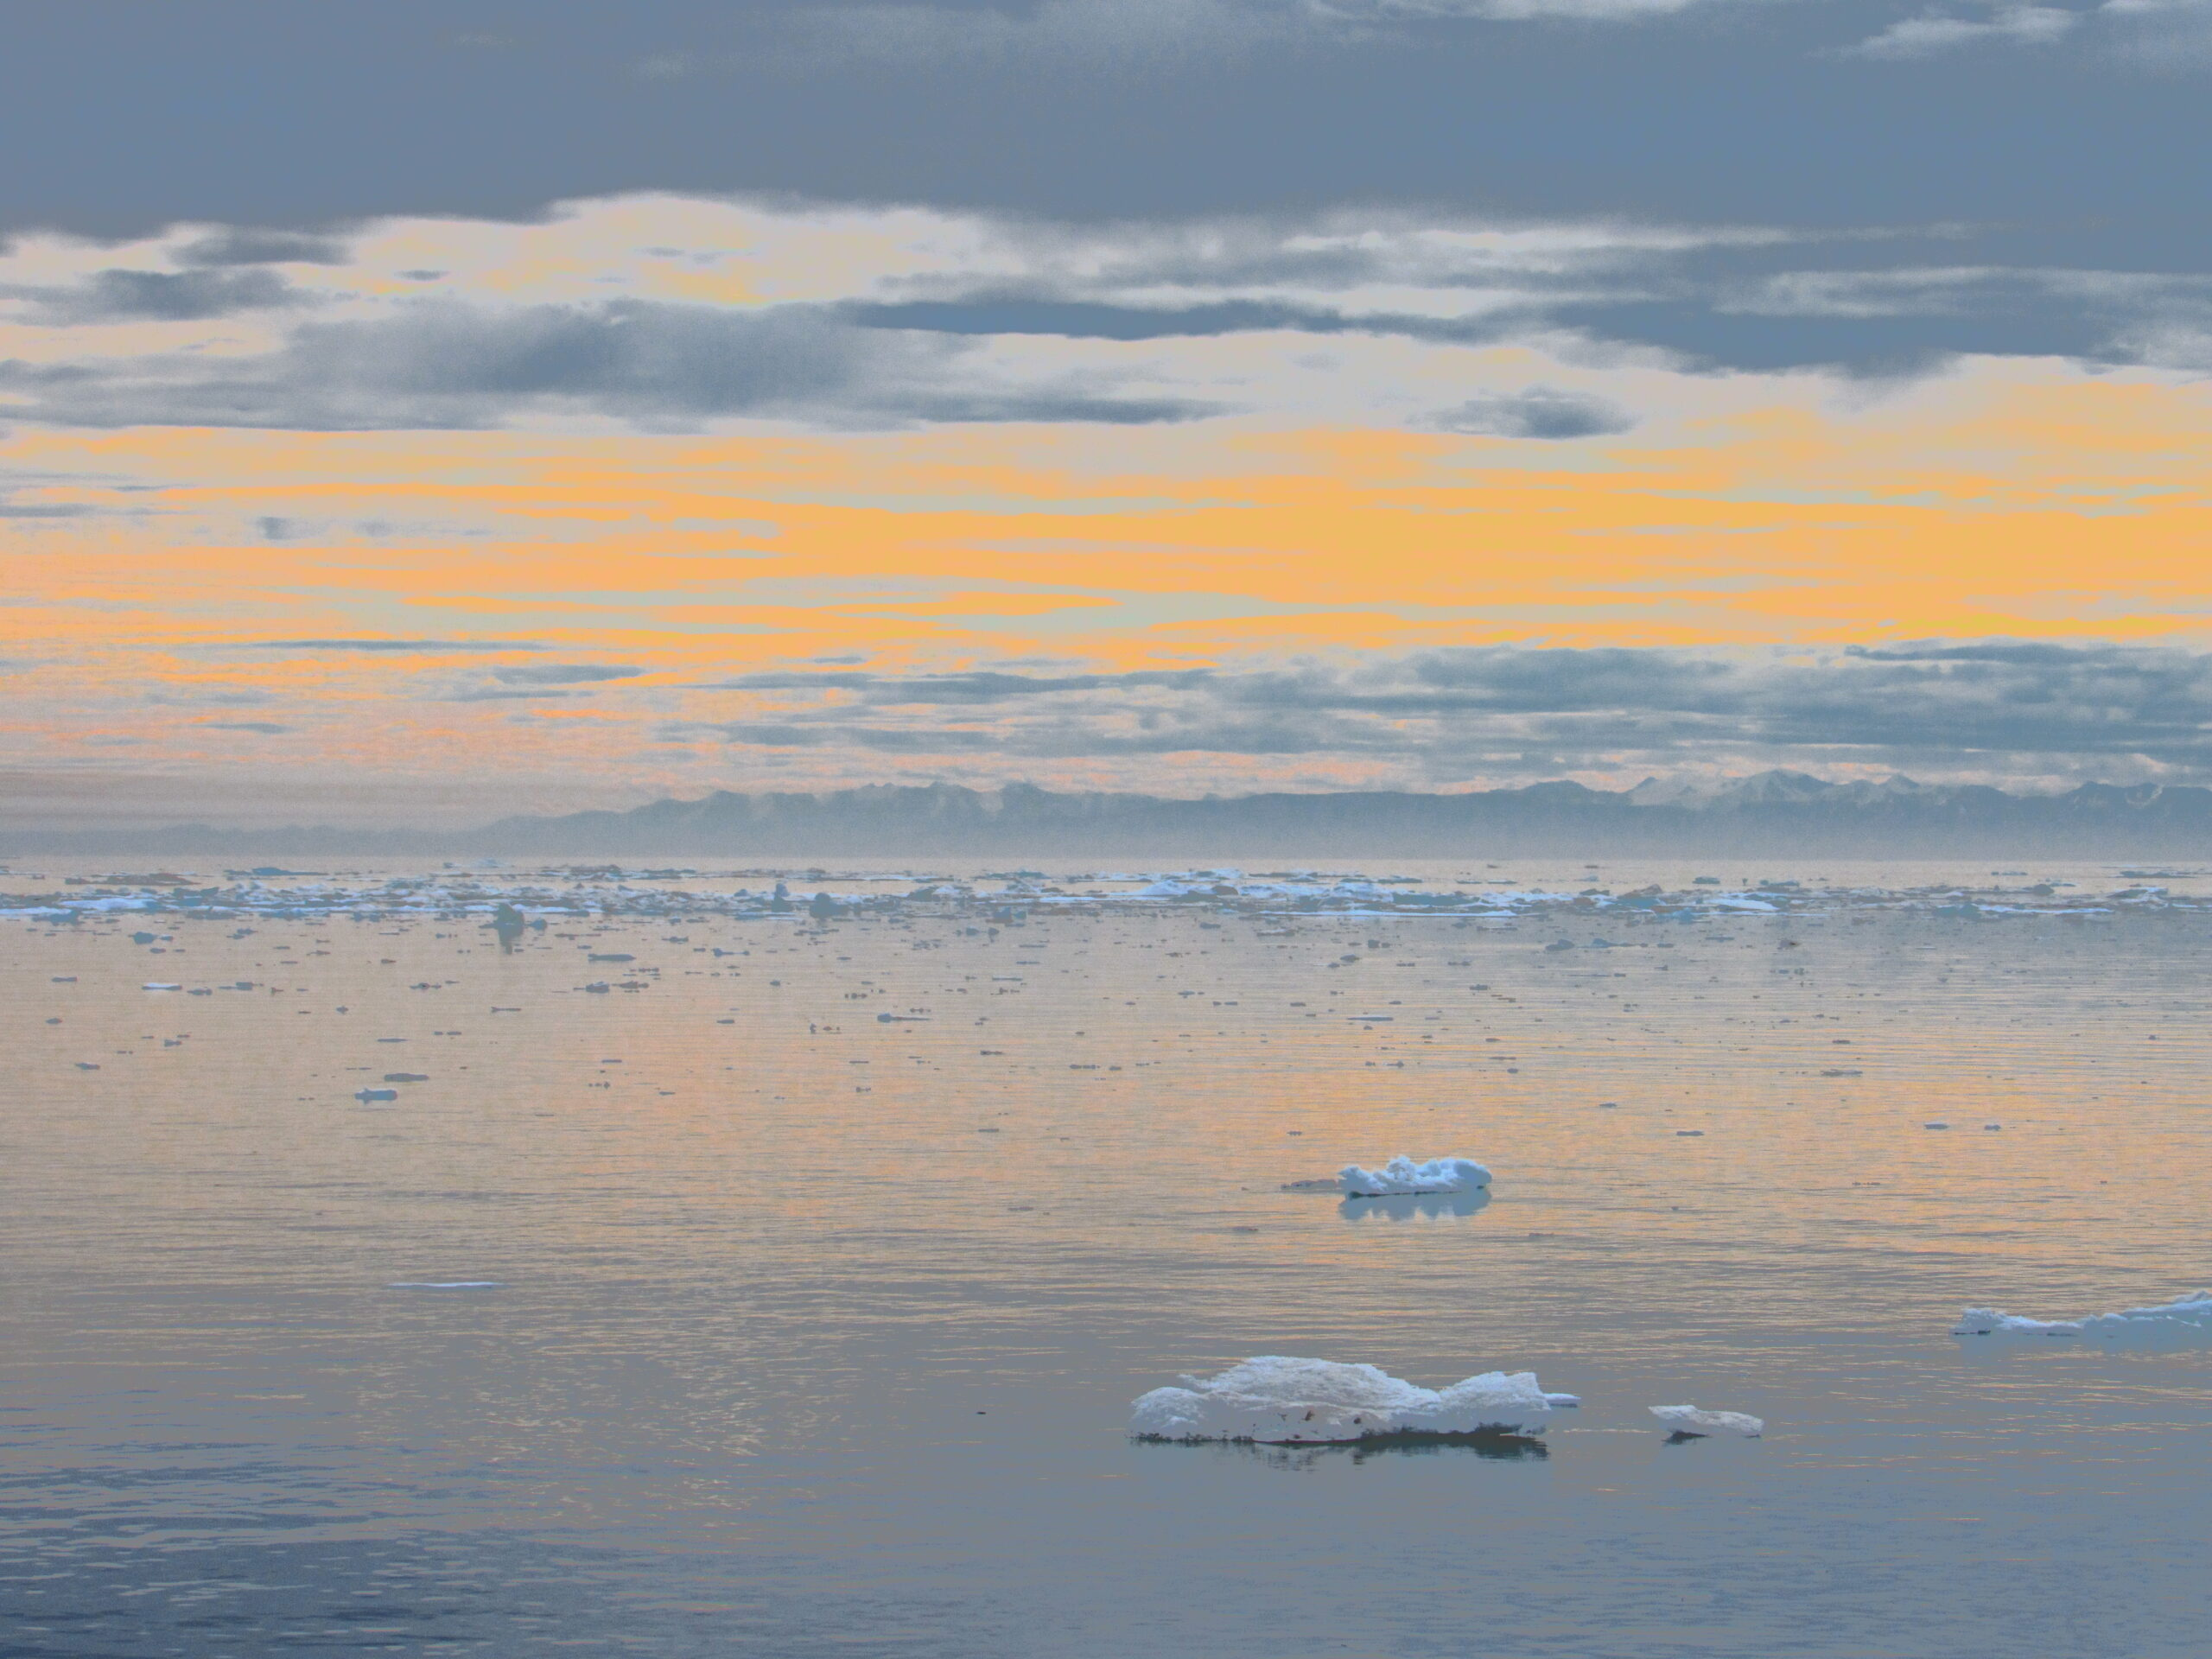 Drawn Picture Of Many Small Icebergs And A Evening Horizon In The DIstance